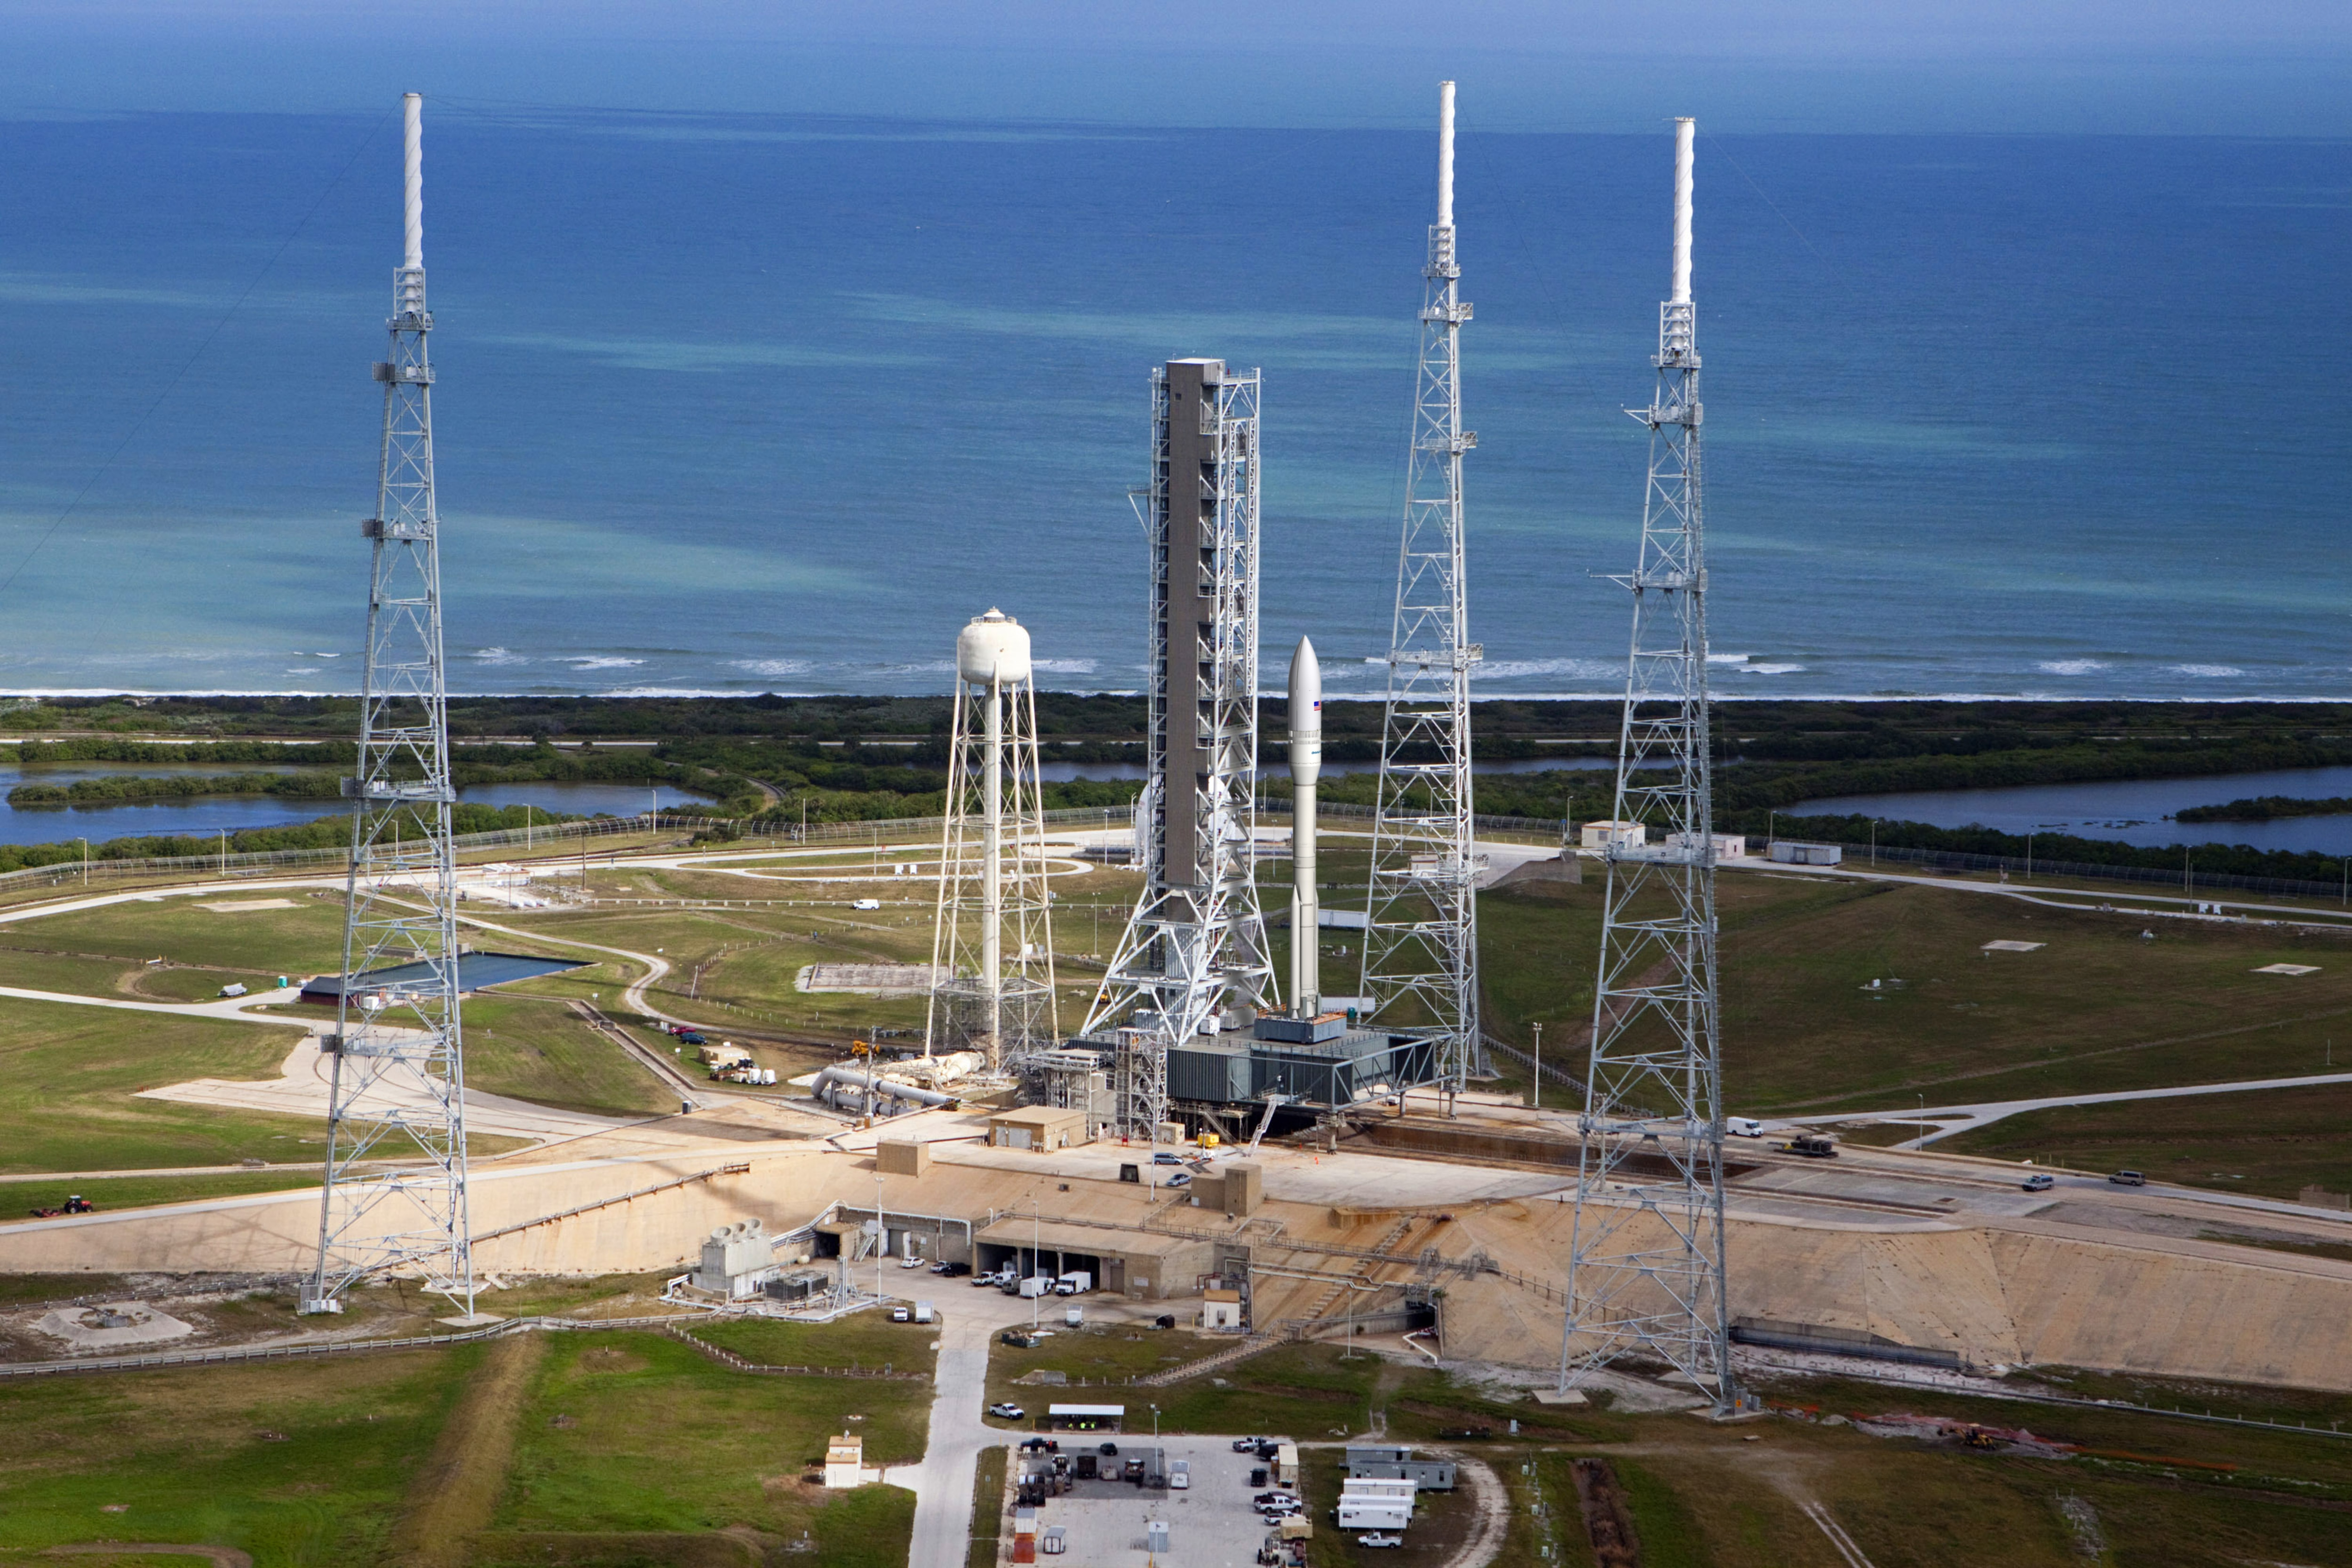 Commonality key for Orbital ATK's bid to win Air Force launch vehicle program